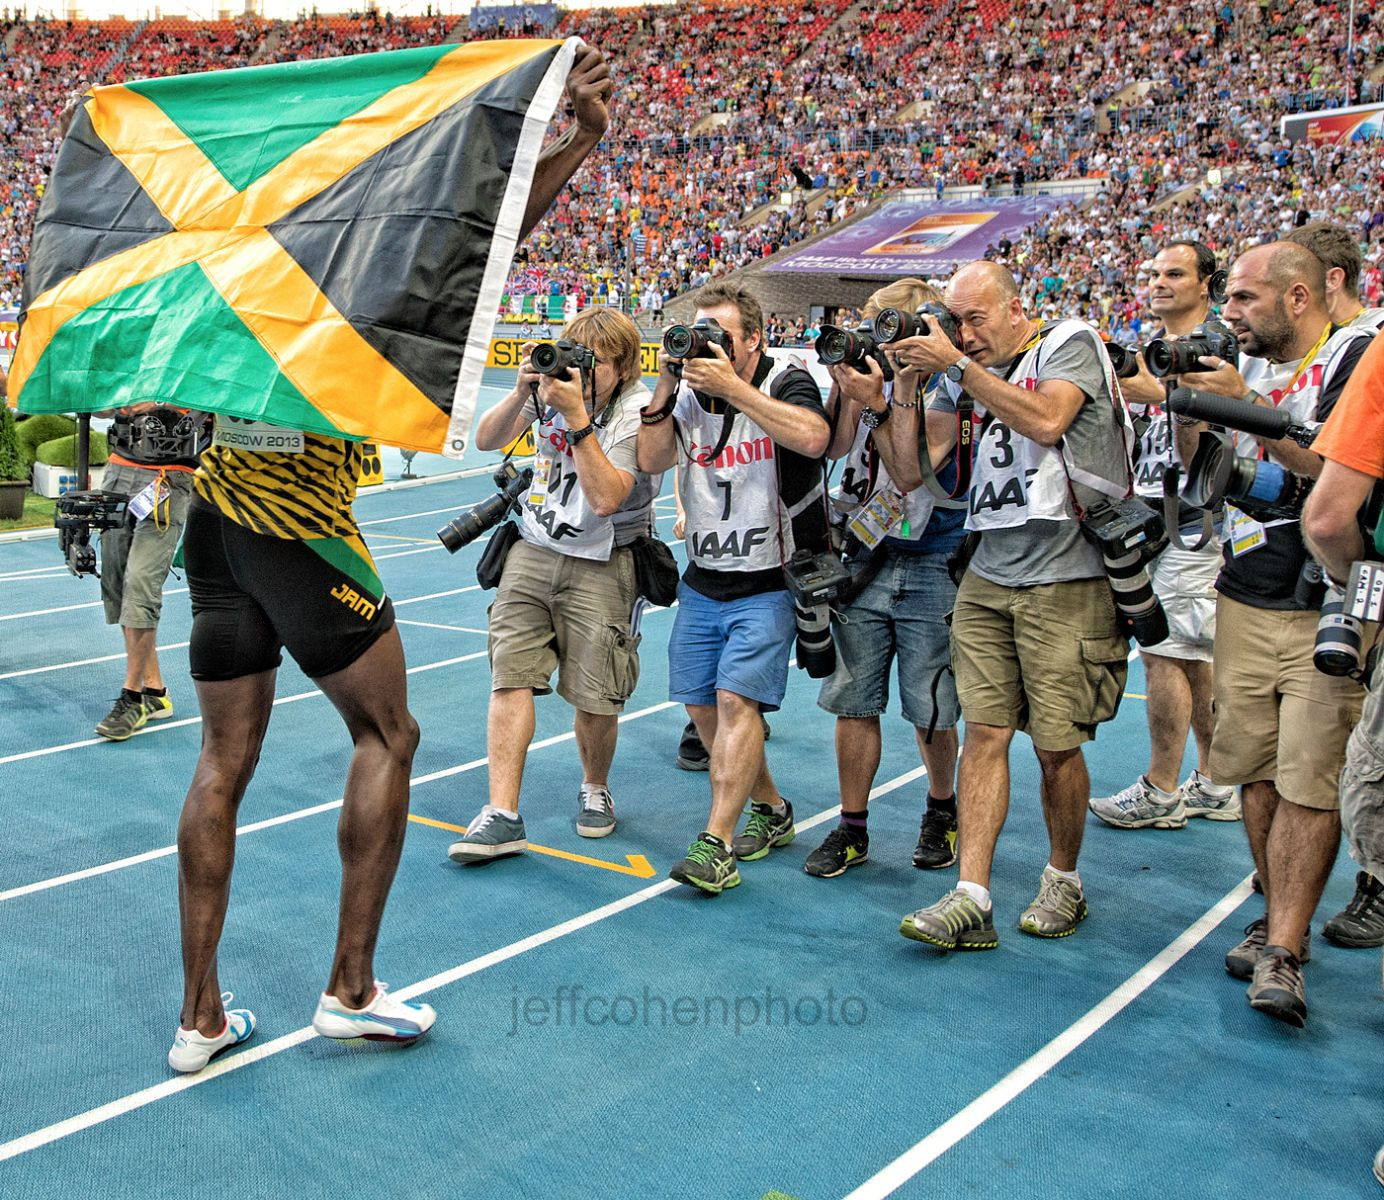 1moscow_2013_usain_bolt_photogs__jeffcohenphoto_081713_4367web.jpg